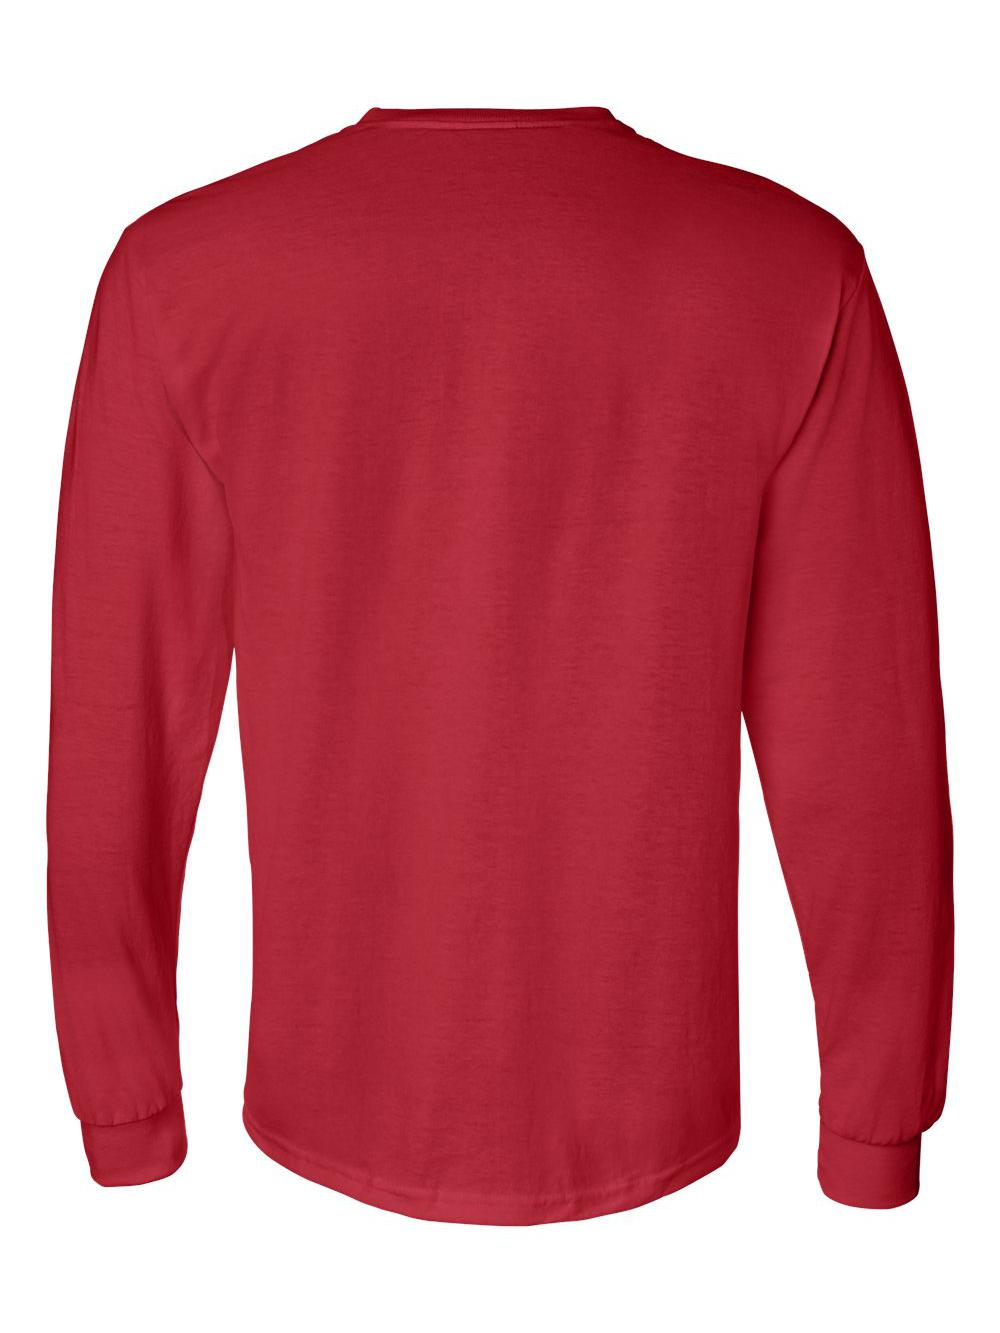 Gildan-DryBlend-50-50-Long-Sleeve-T-Shirt-8400 thumbnail 31